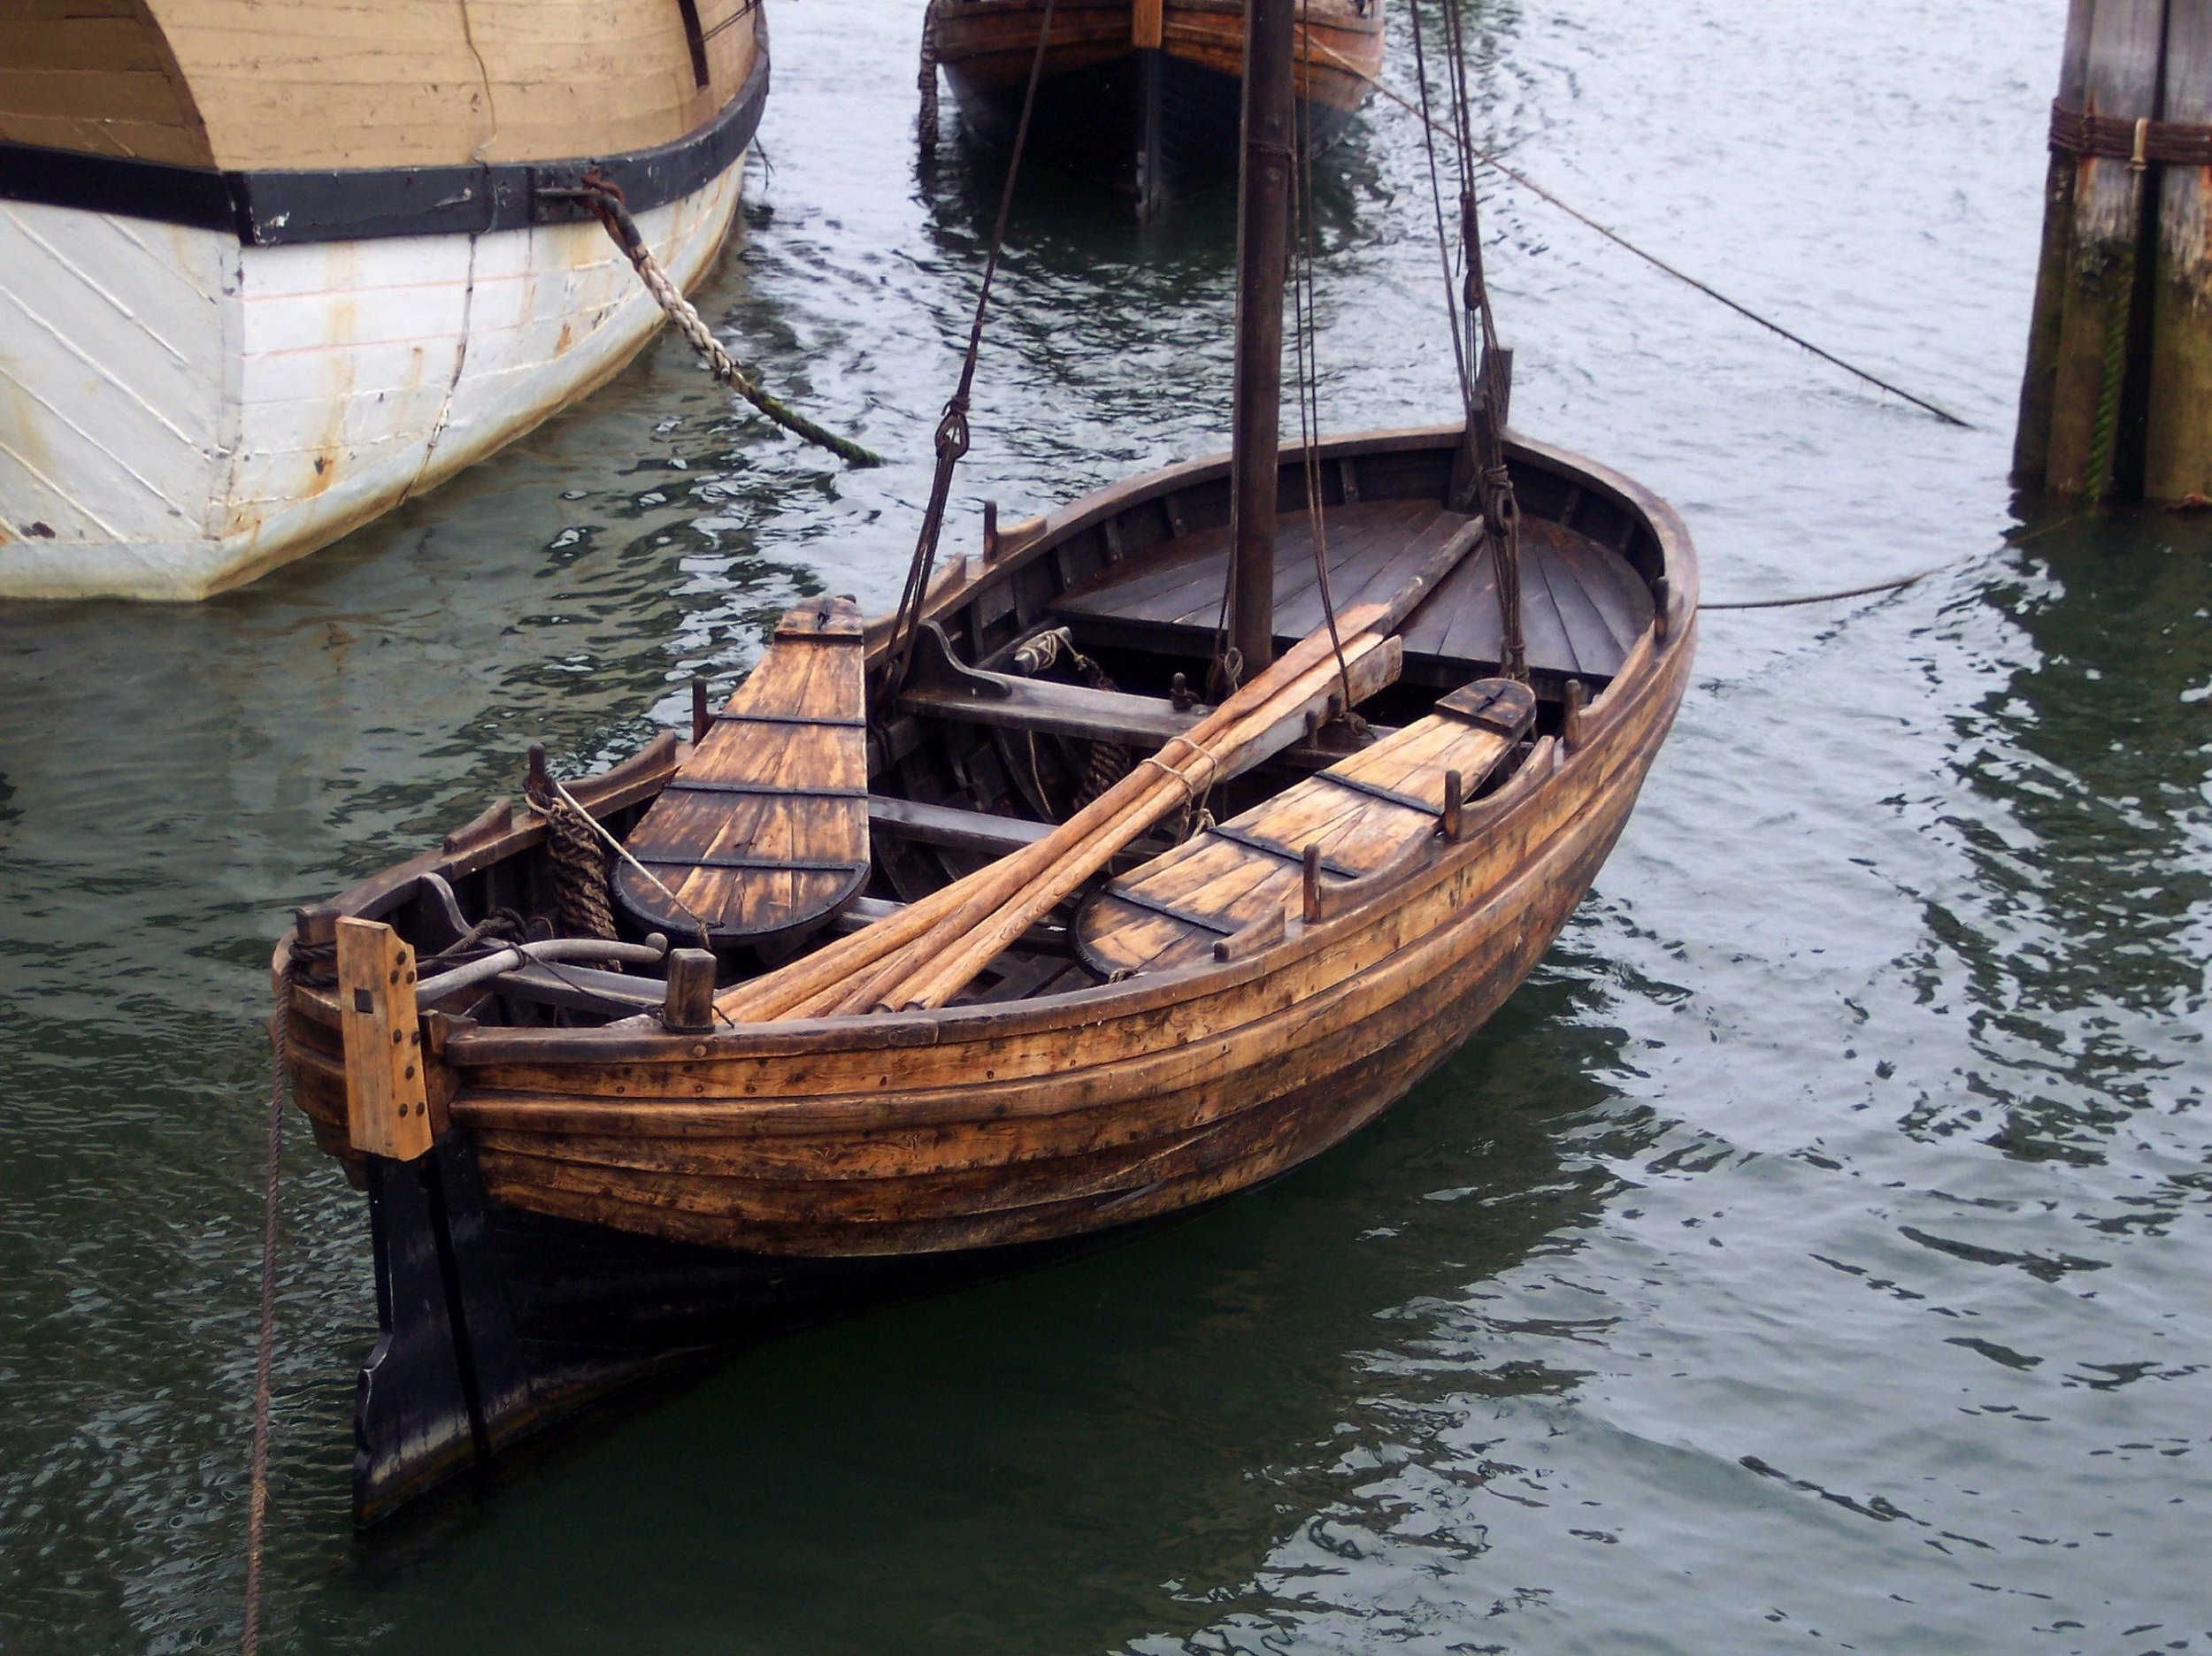 A shallop was a small boat attached to The Mayflower. It was used for exploring and traveling back and forth from the ship.